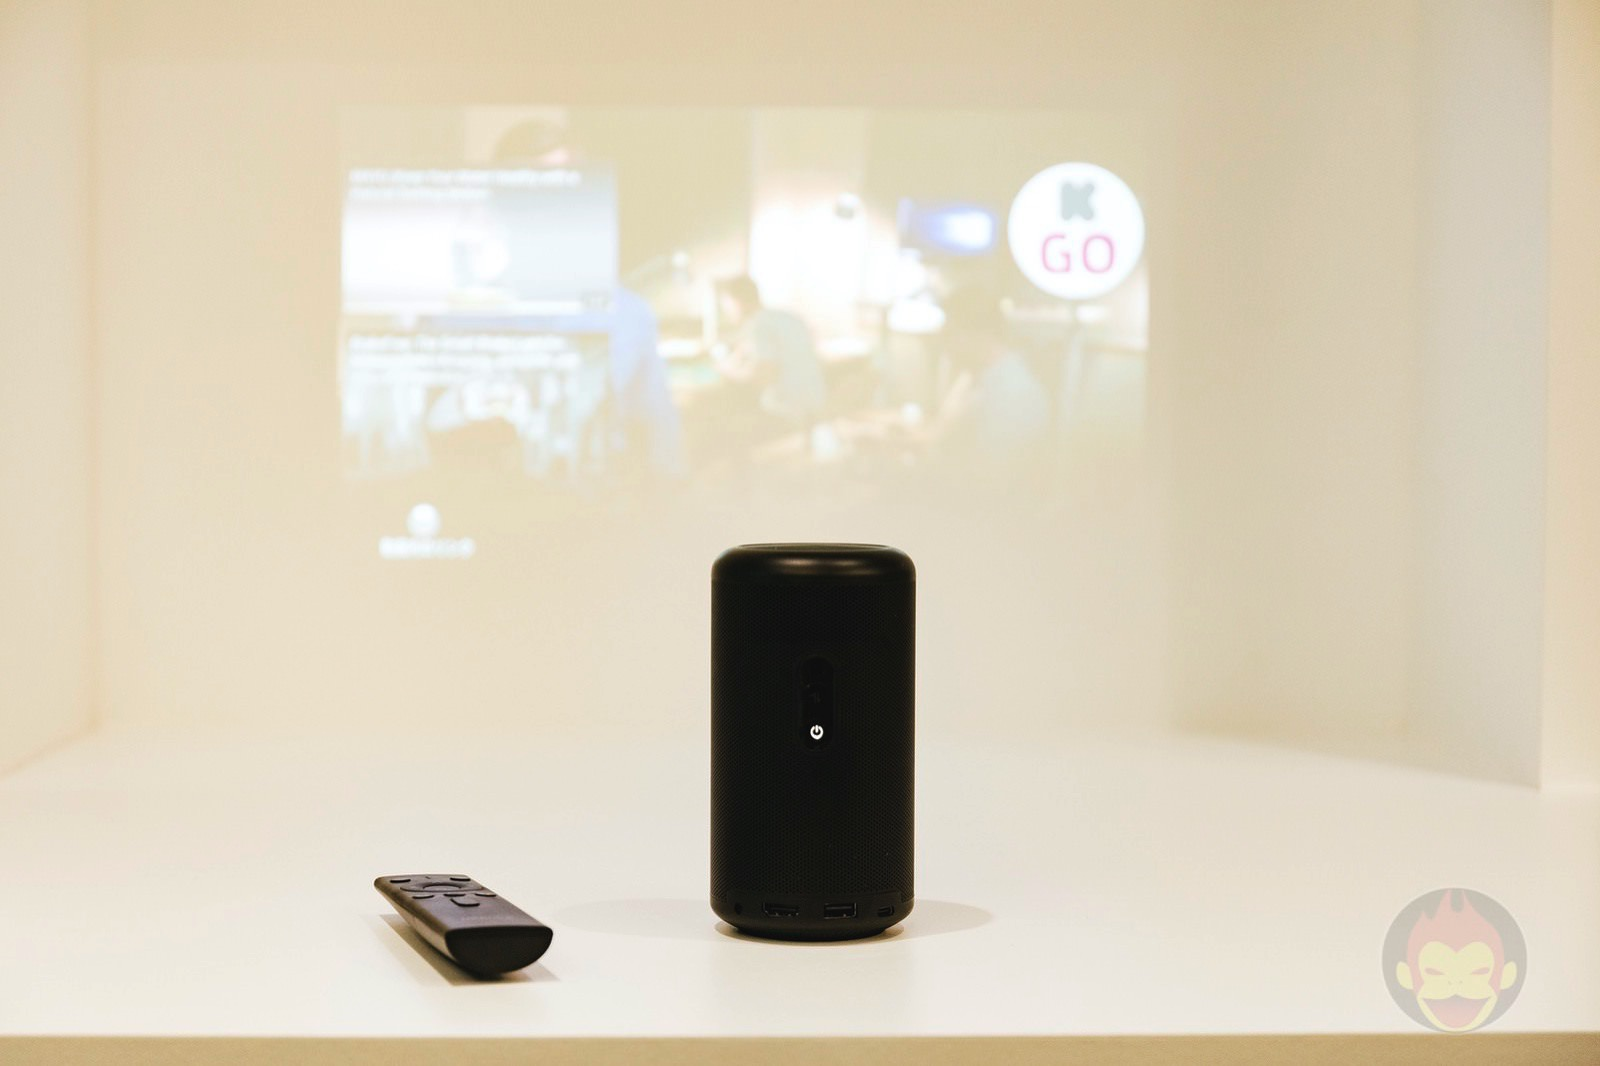 Anker-Press-Conference-2018-New-Products-19.jpg